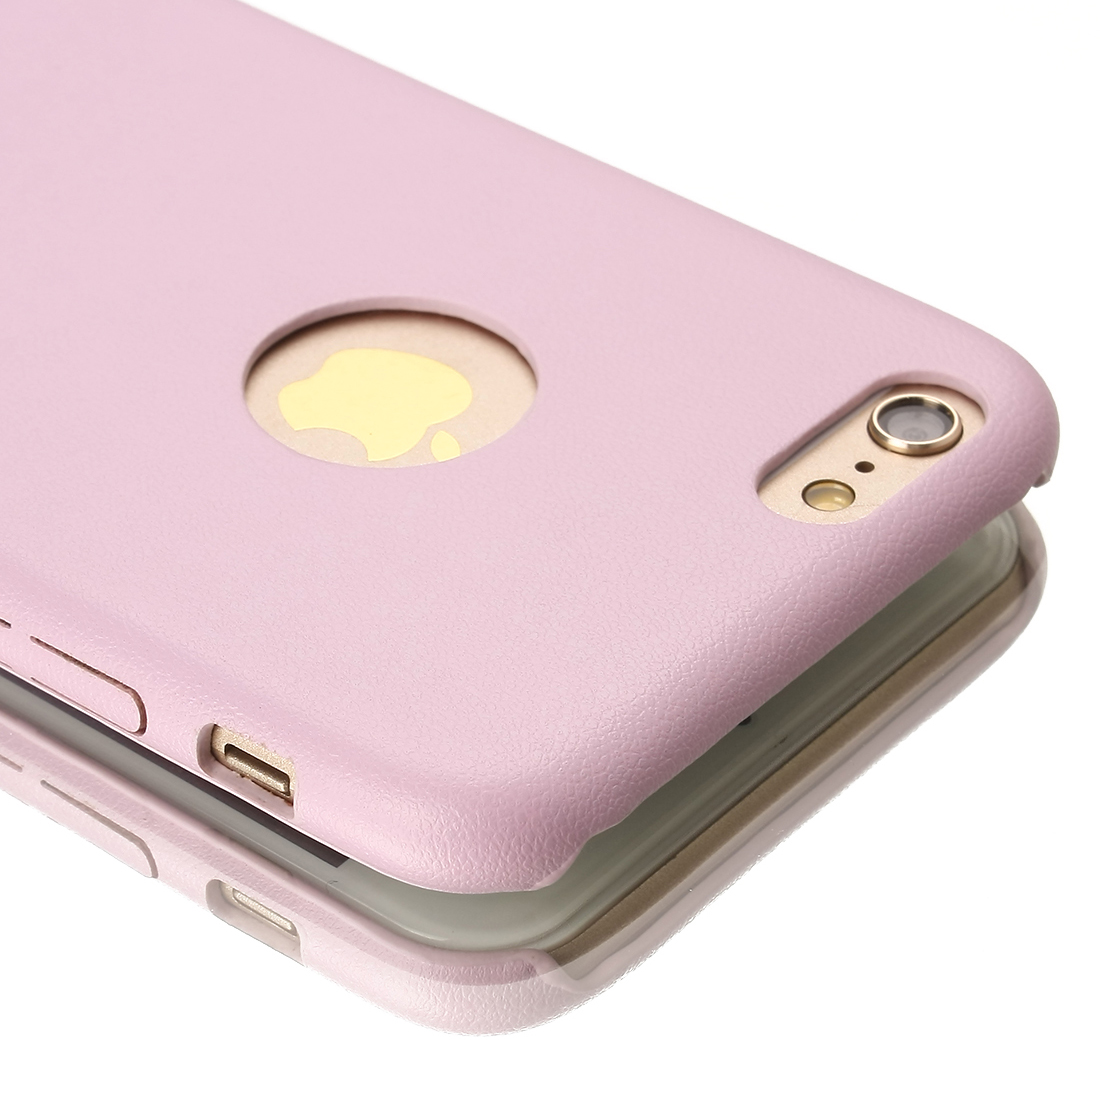 "New Luxury PU Leather Ultra-thin Case Cover For Apple iPhone 6 4.7"" Pink"